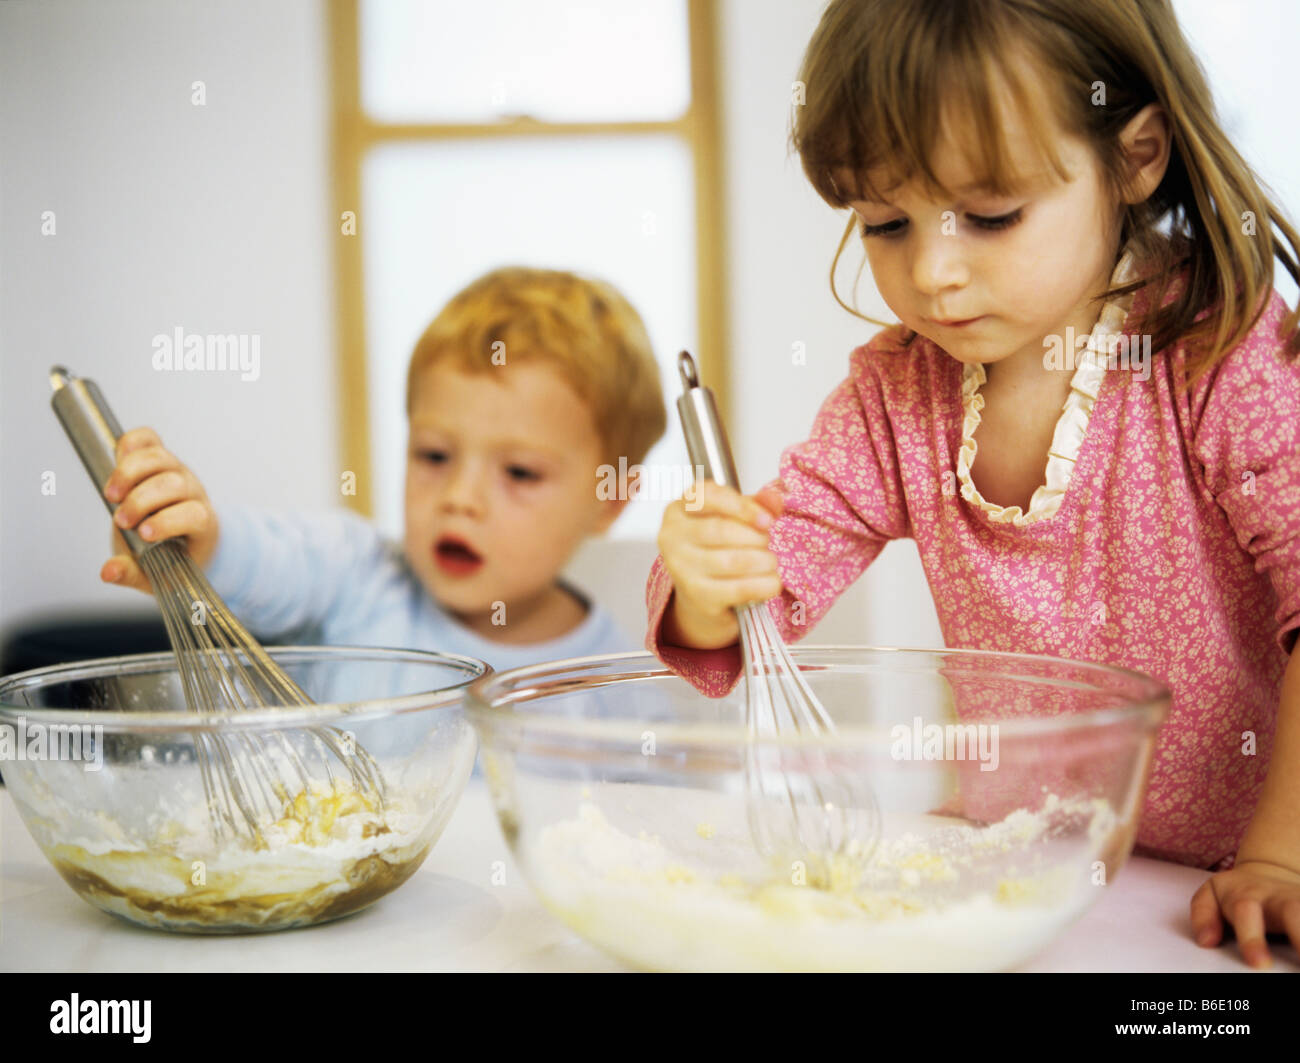 Making cakes. Two three year old children mixing eggs, sugar and flour in a mixing bowl. - Stock Image